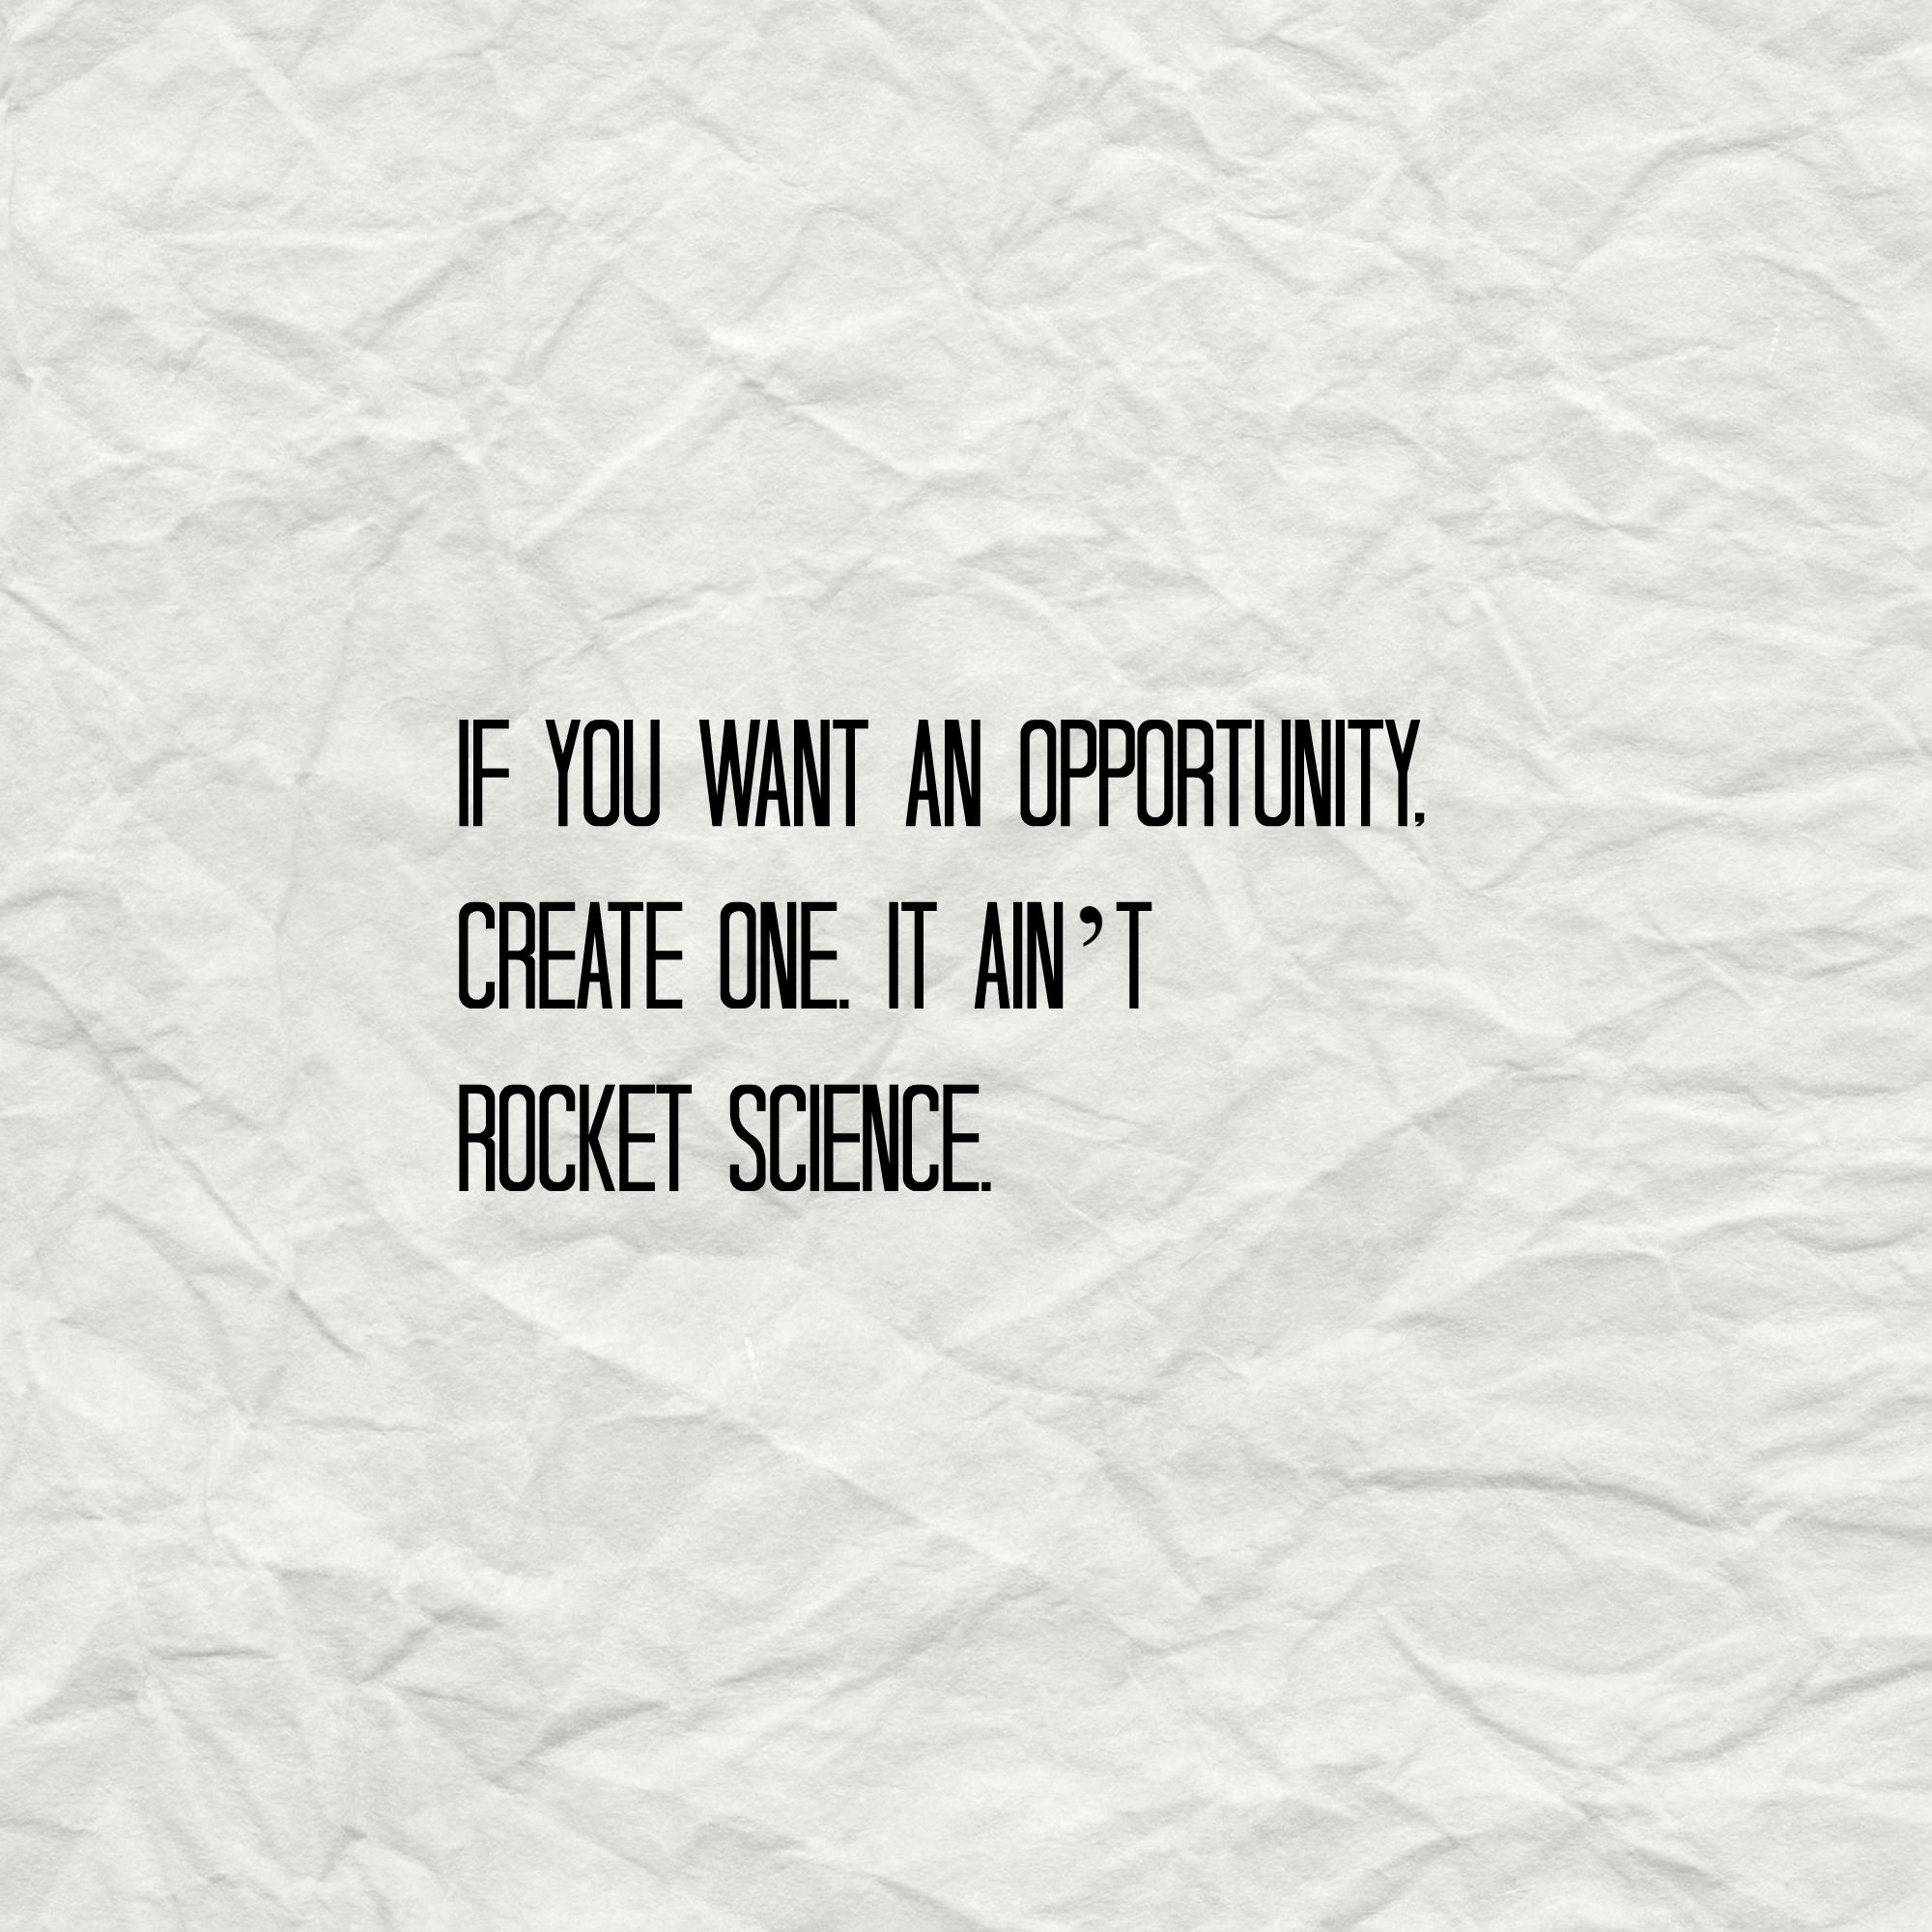 #opportunity